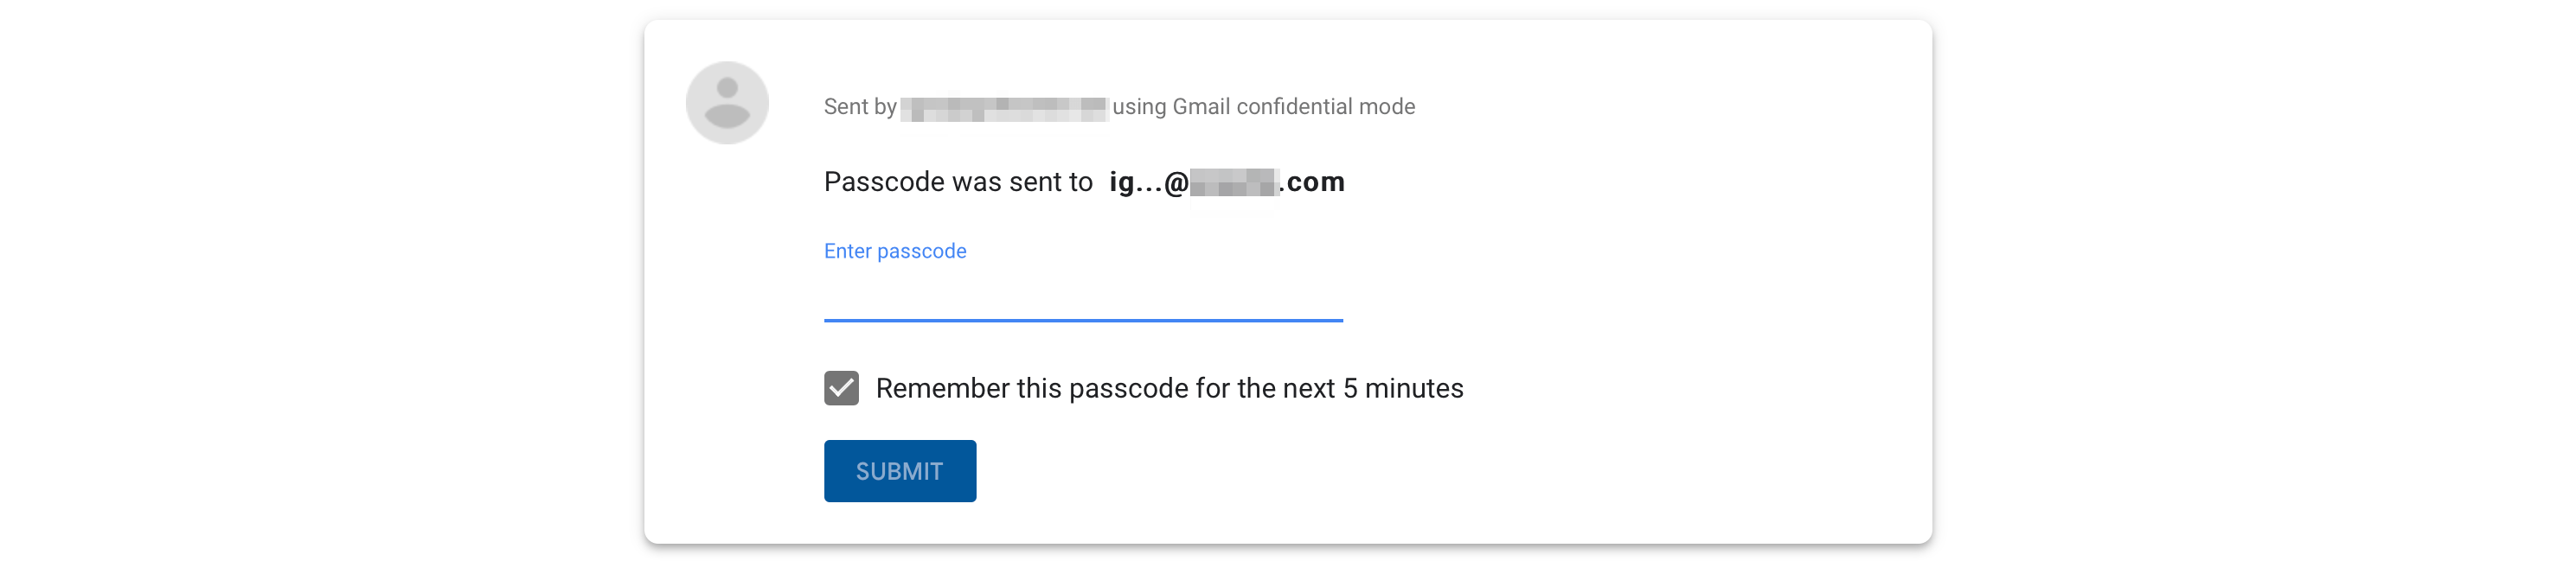 gmailconf_7.png